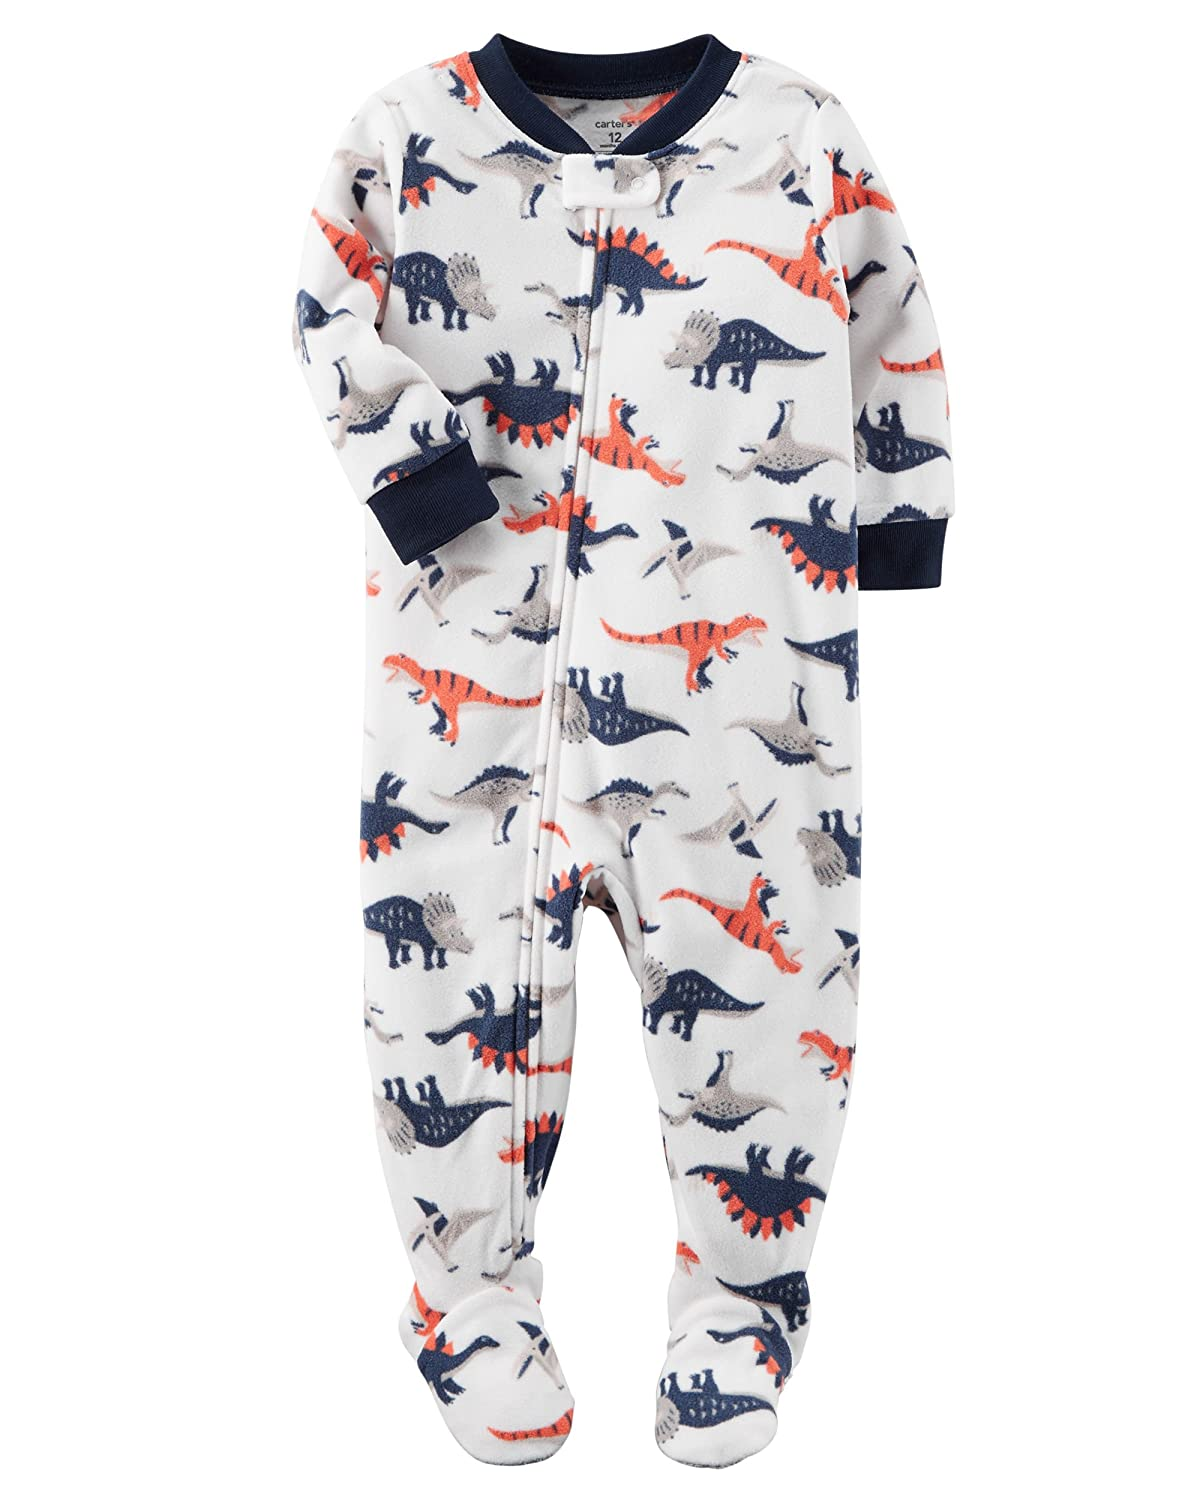 18 Months, Dinosaurs Carters Baby Boys 1 Pc Fleece 327g106